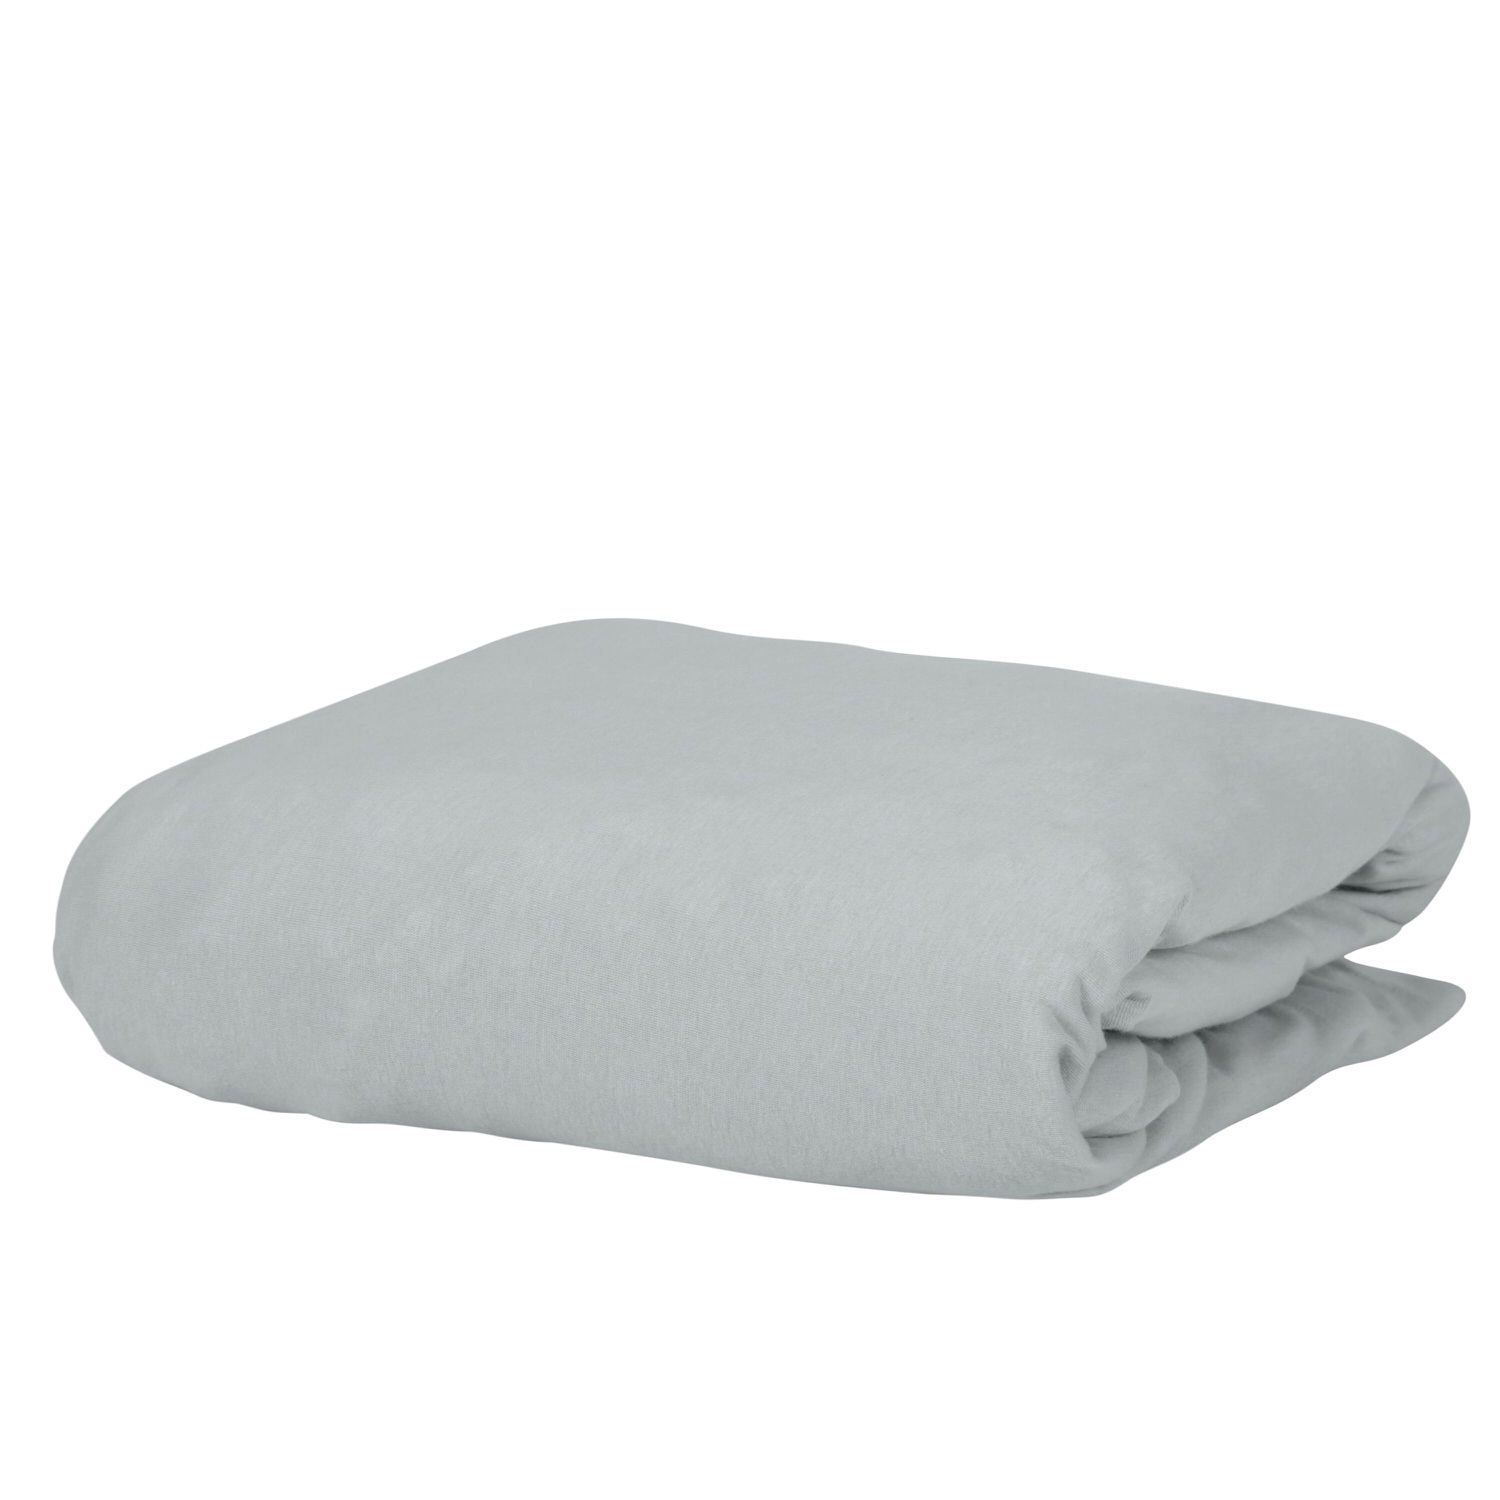 100% Premium Combed Cotton Jersey Silver Fitted Sheet with Aloe Vera Treatment